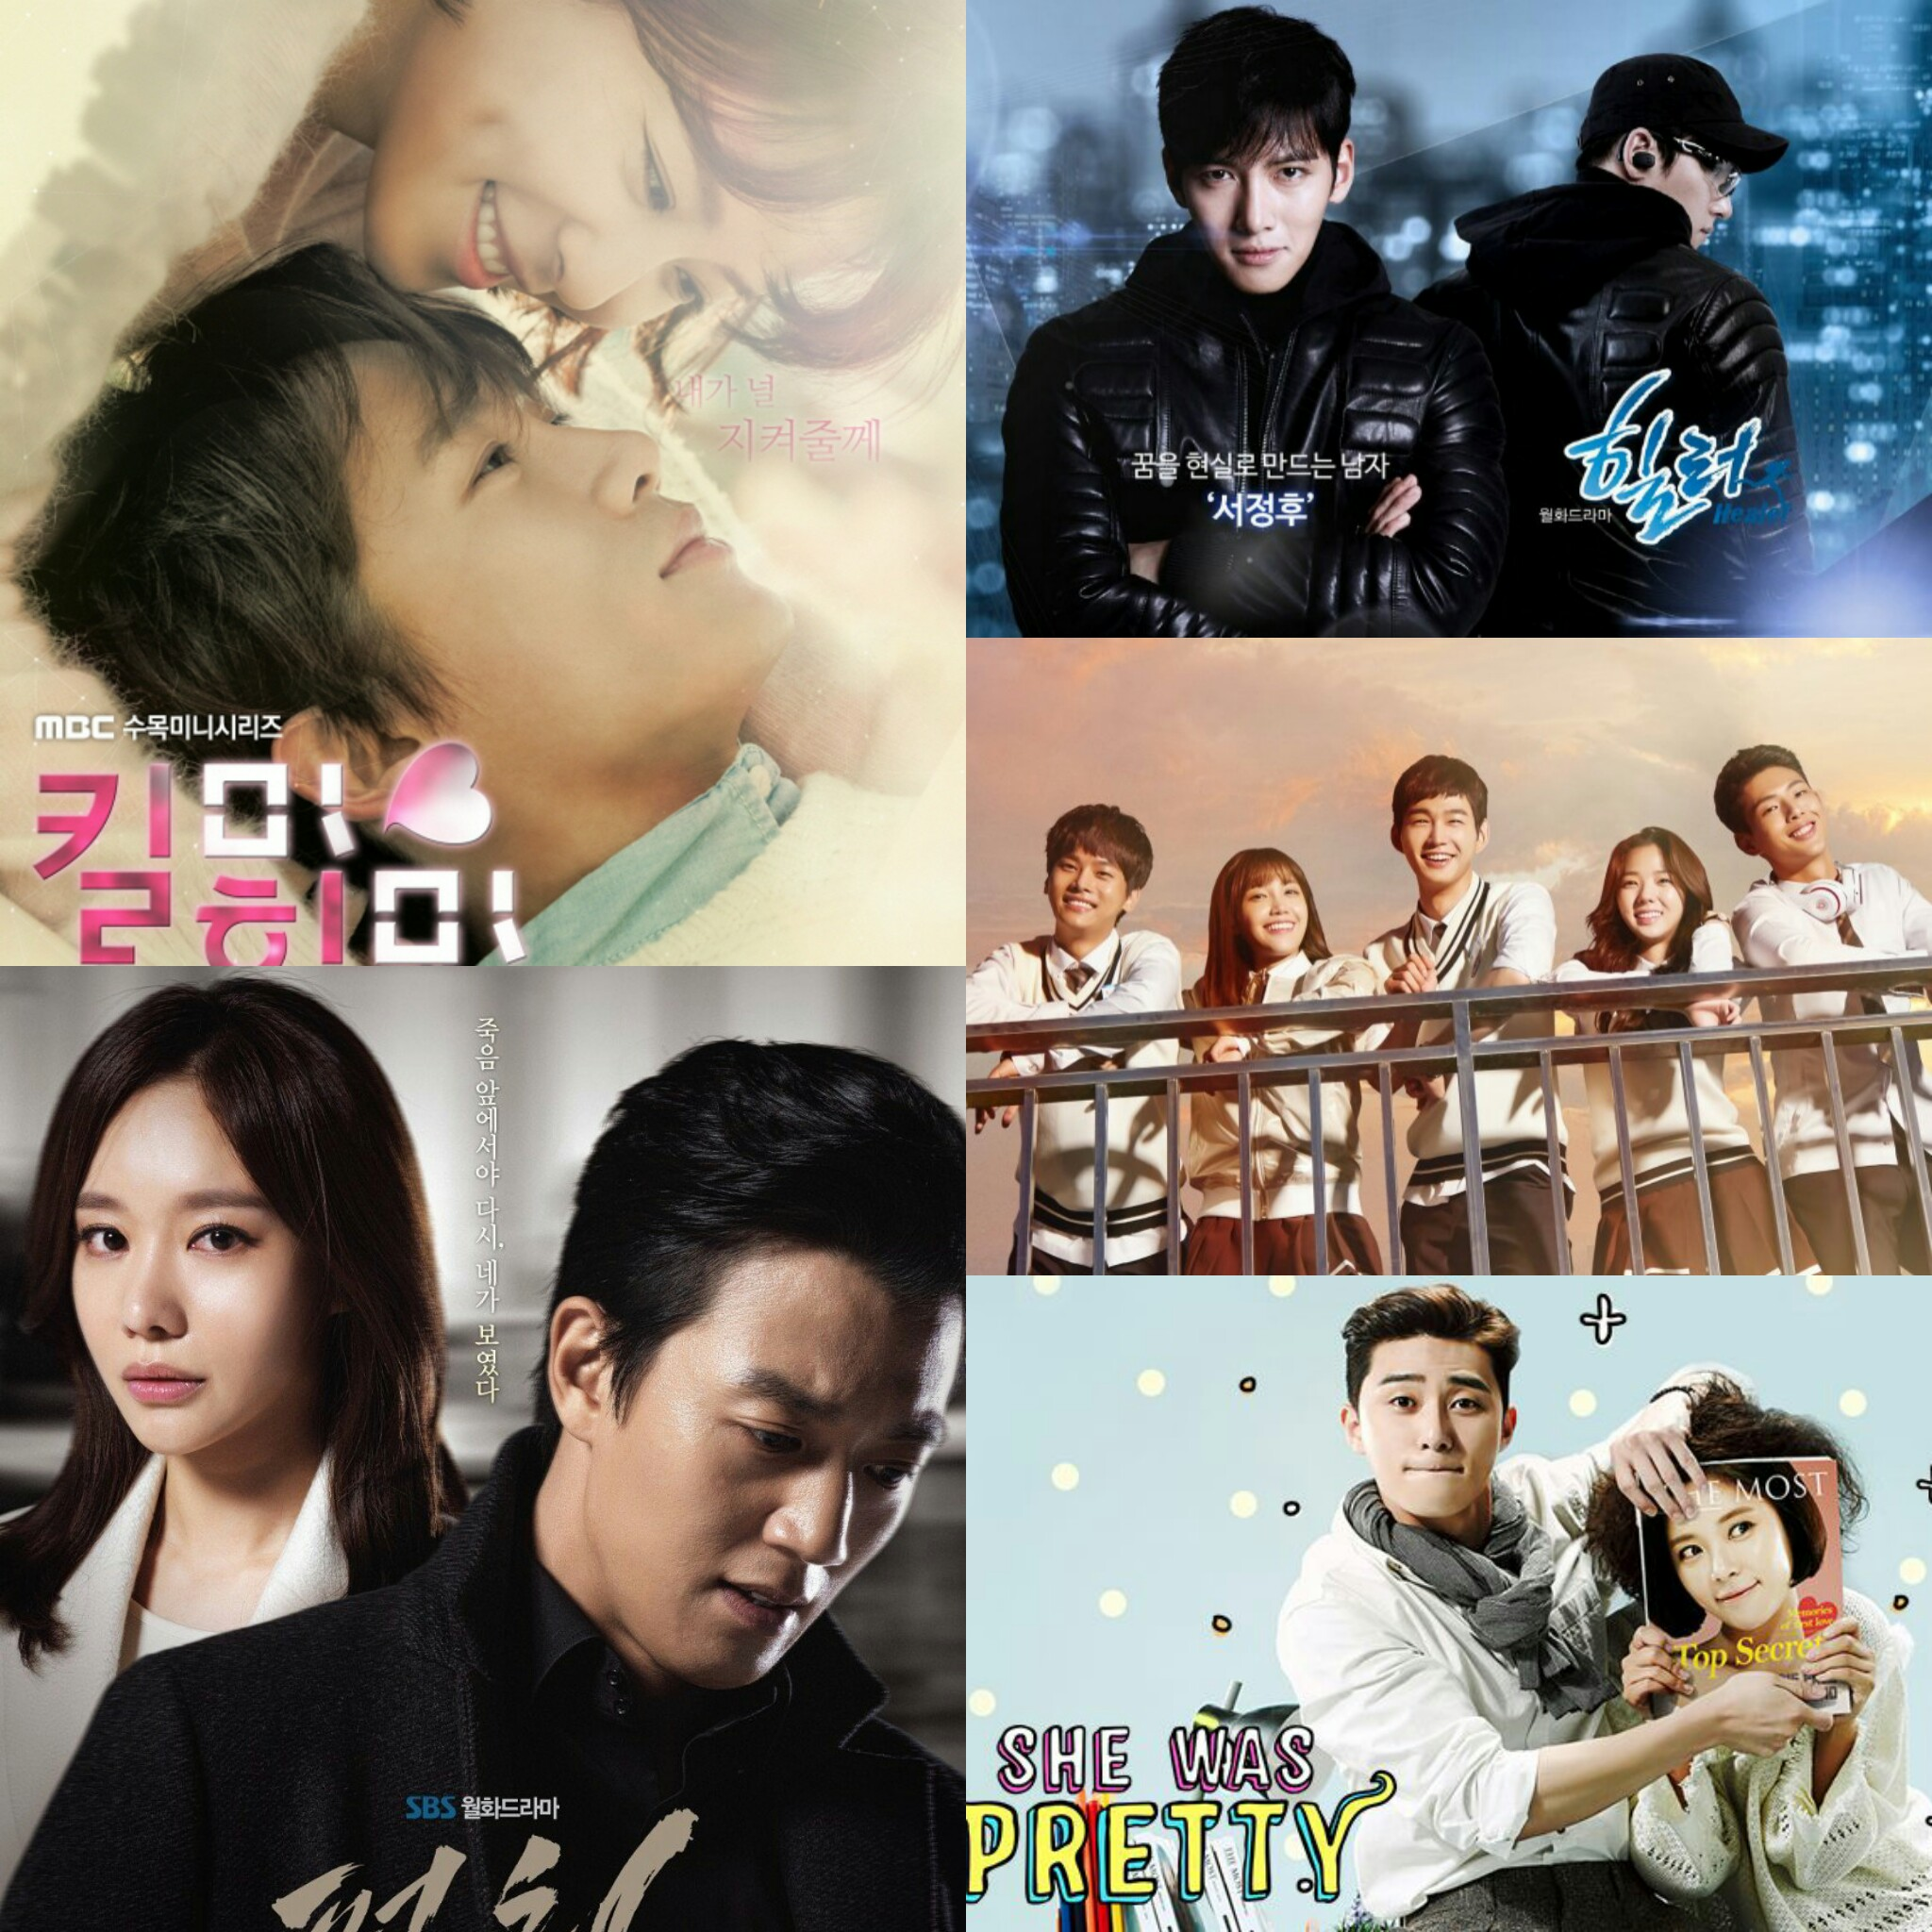 7 Most Awaited Beauty Trends That Will Dominate 2018: 5 Must See K-dramas Of 2015